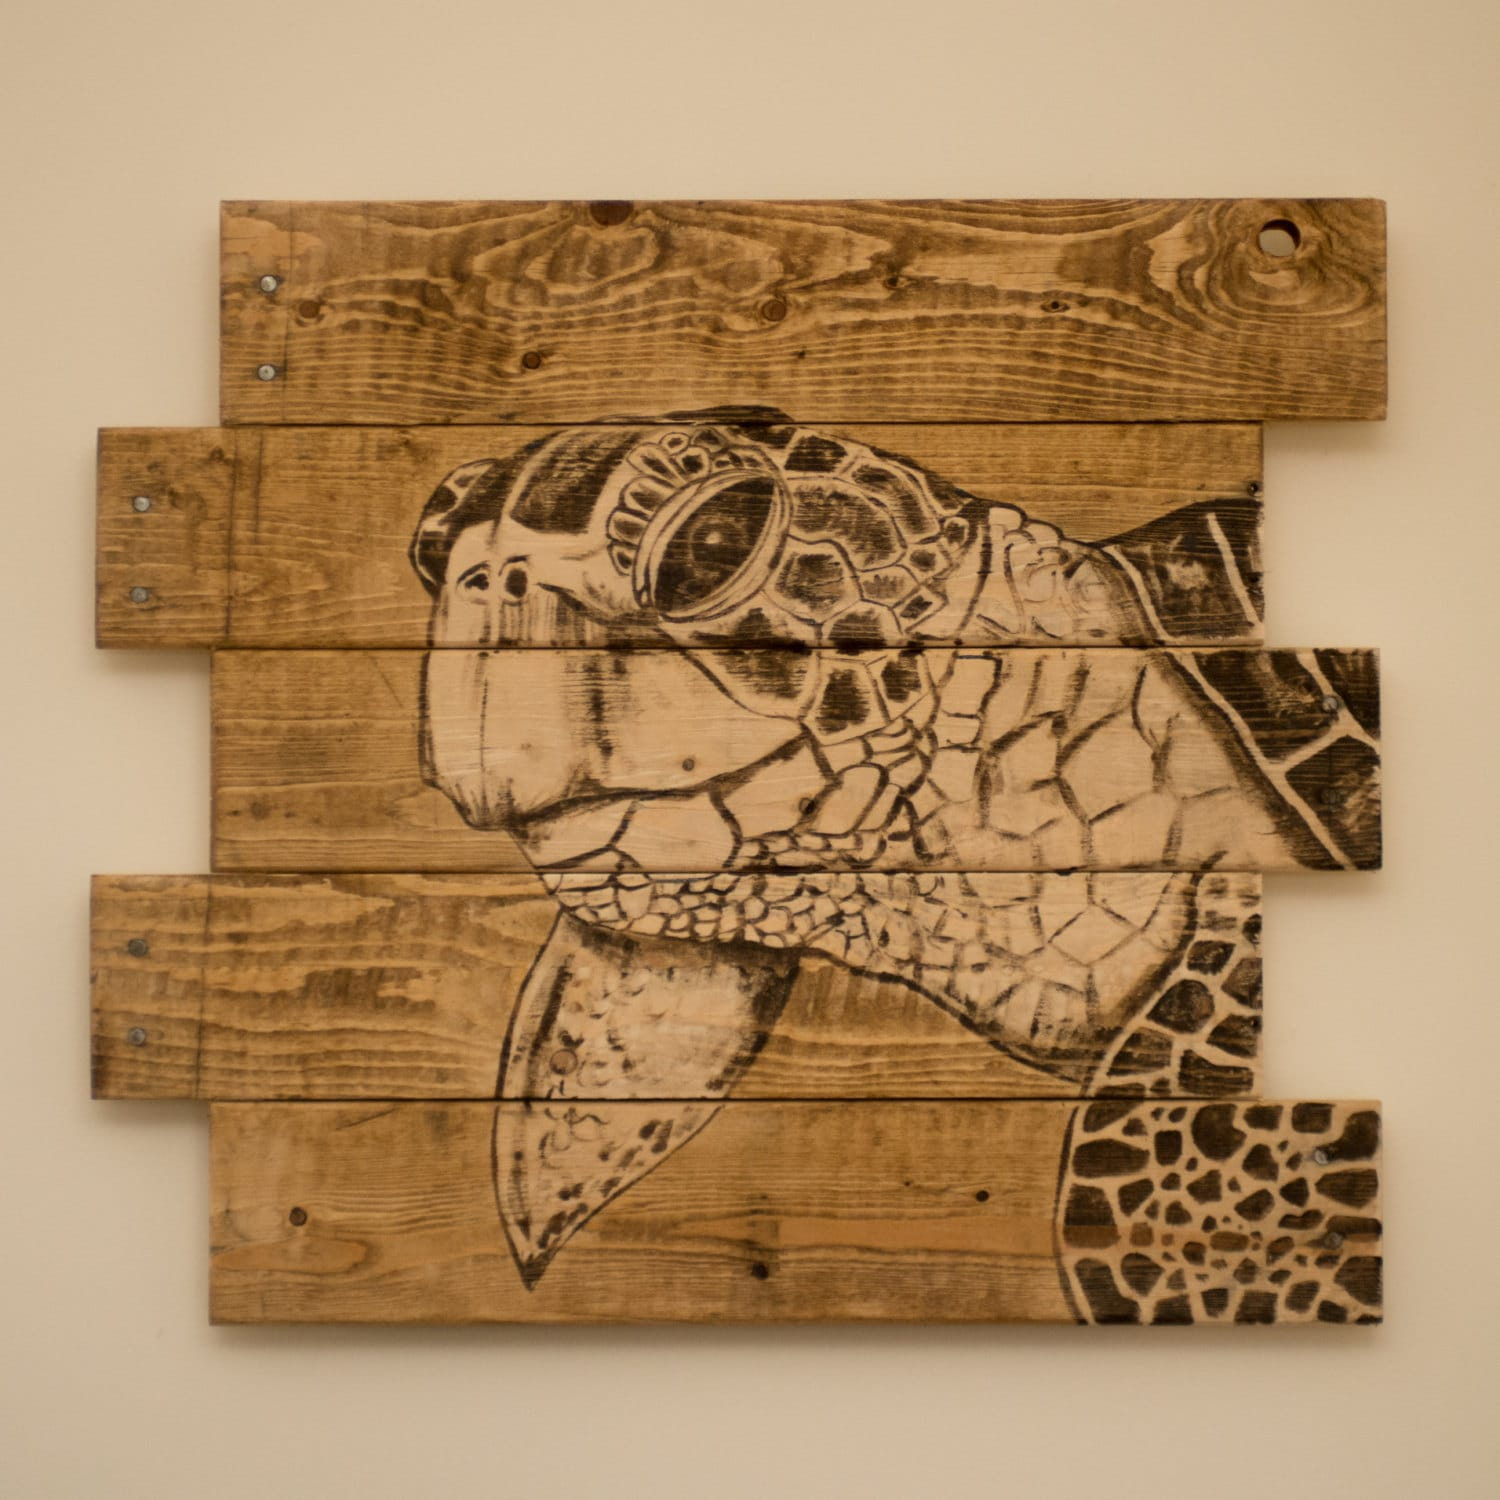 Wood Art Decor Amusing Sea Turtle Decor Sea Turtle Wall Art Lake House Decor Rustic Decorating Design